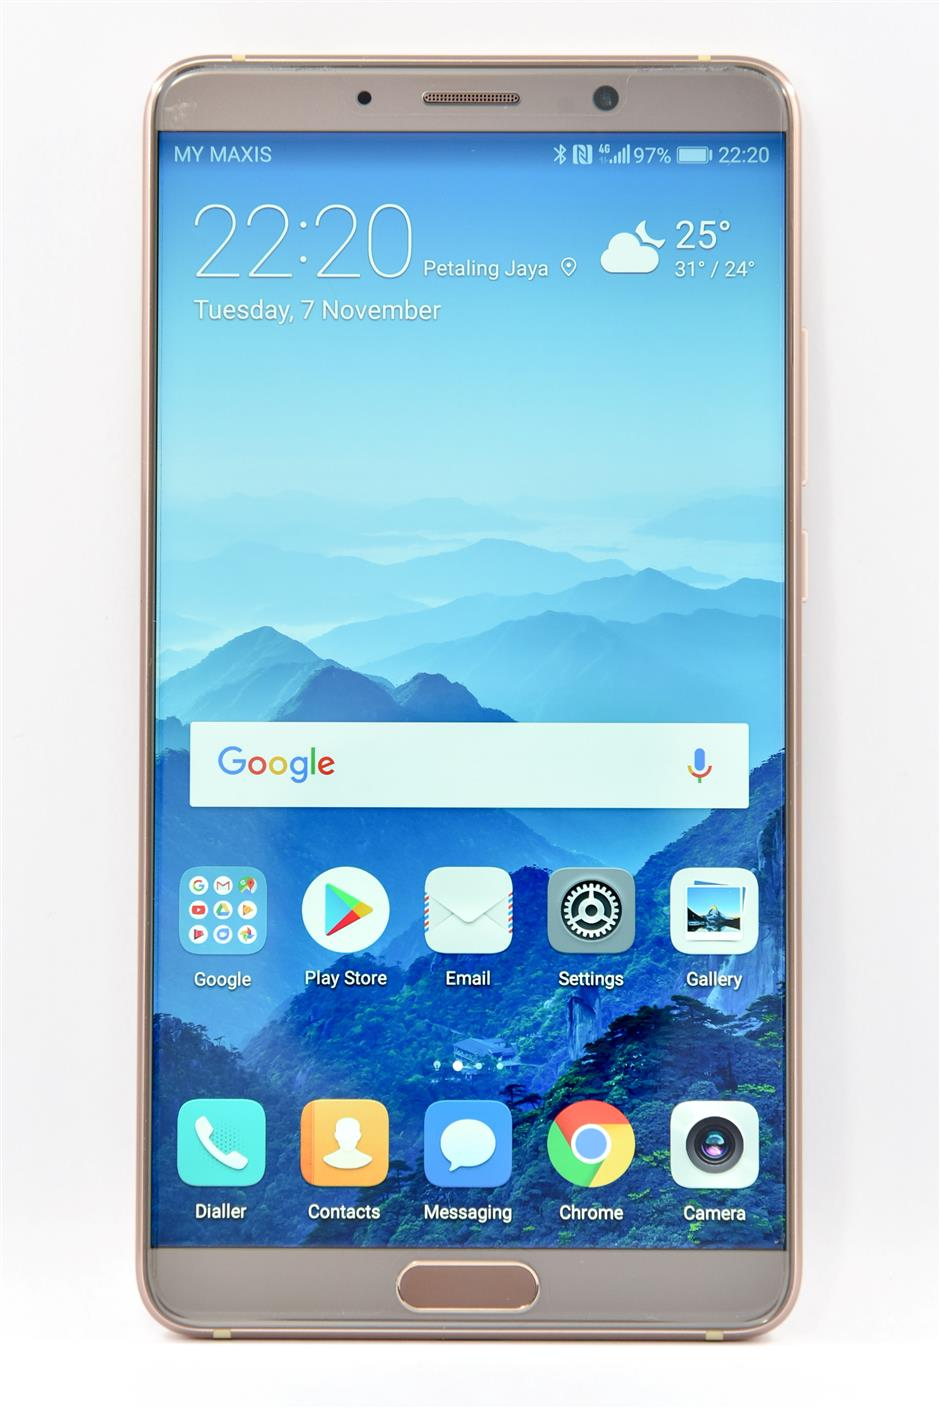 The Mate 10 boasts a 5.9in QHD LCD panel with 1,440 x 2,560 pixels resolution, and has a 16:9 screen-size and aspect ratio. — C.Y. LEE/The Star